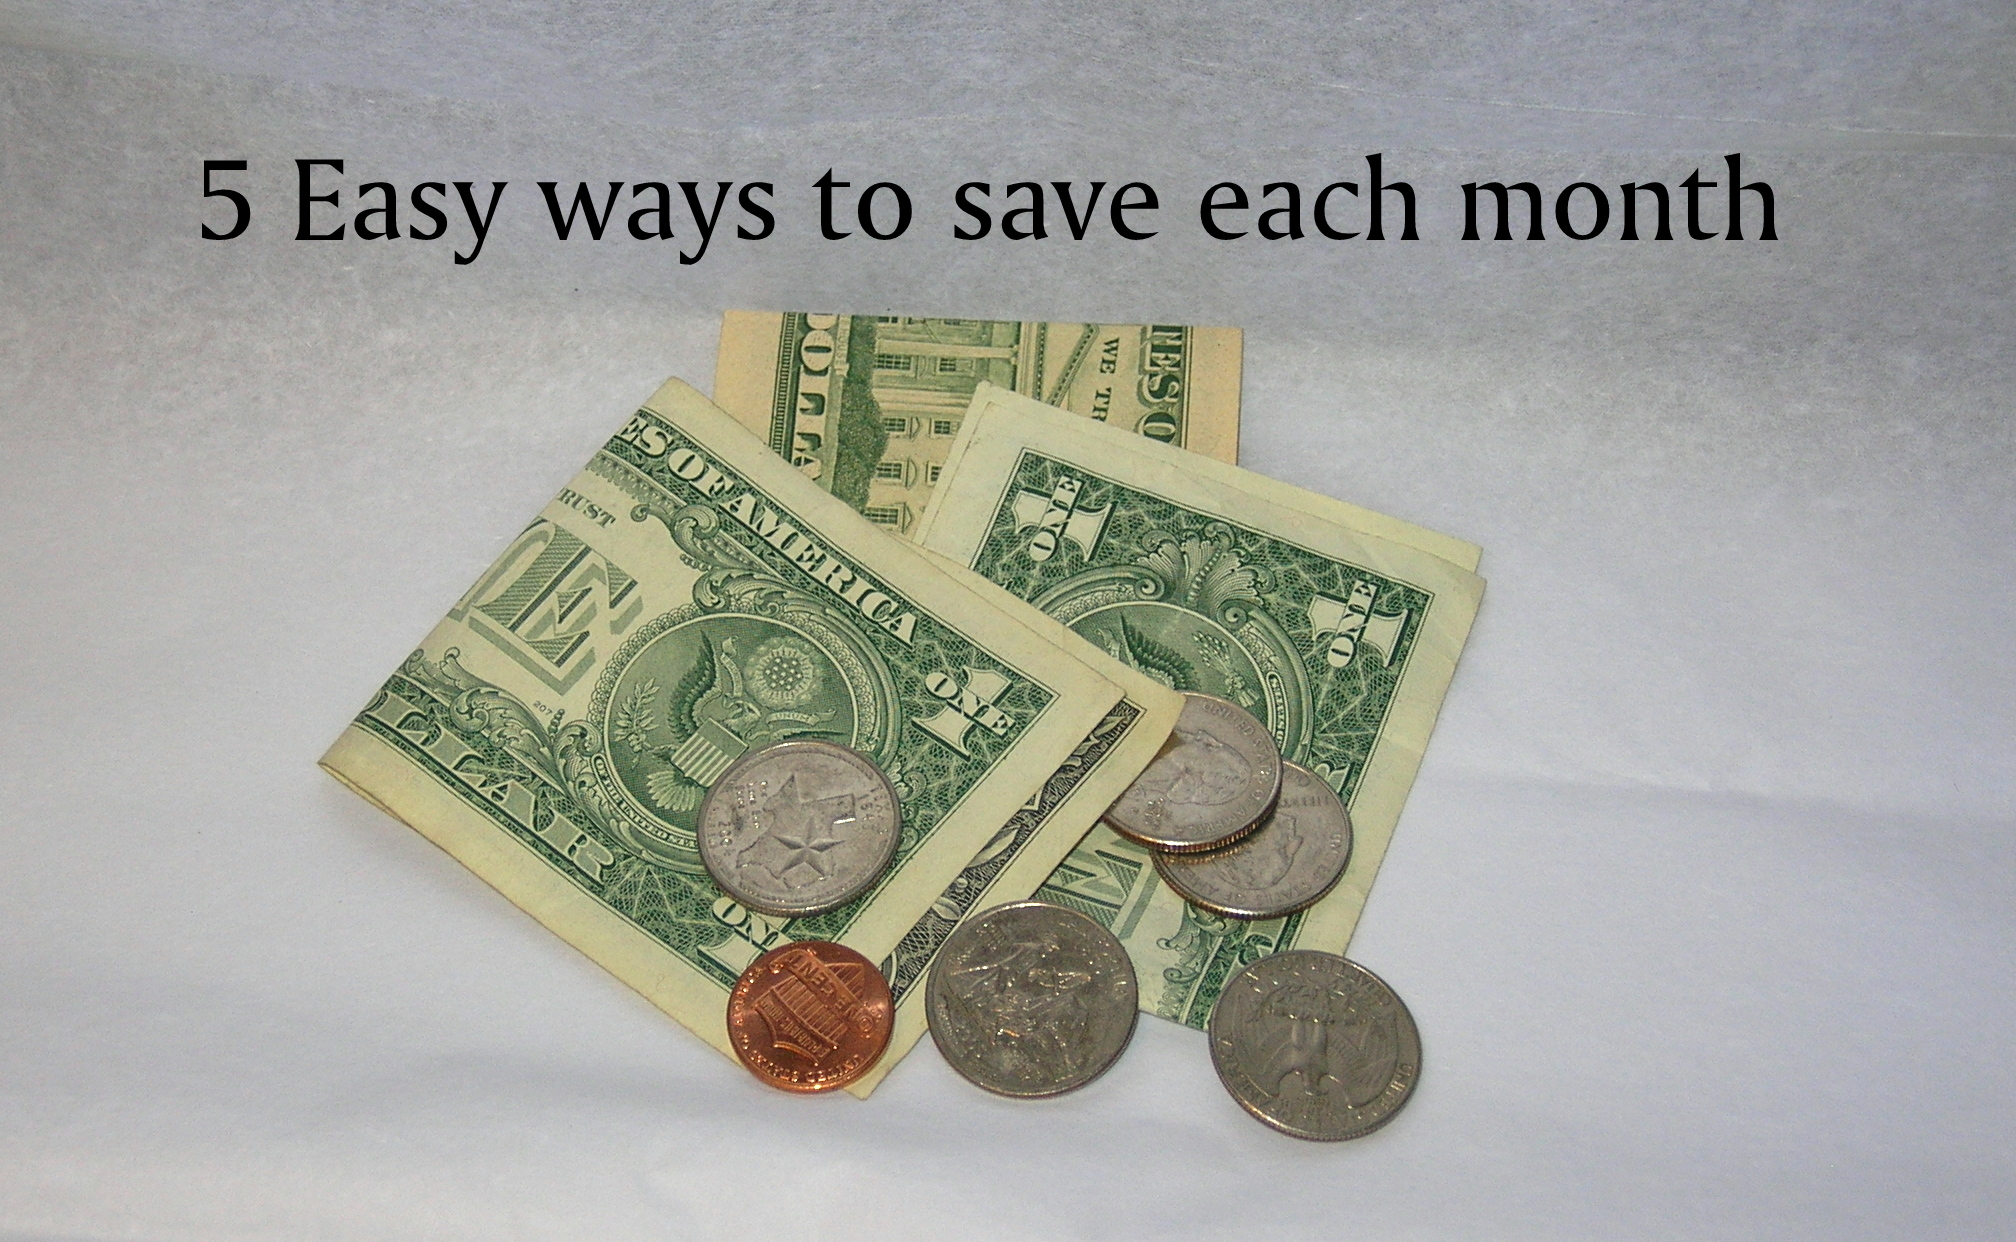 5 easy ways to save money each month